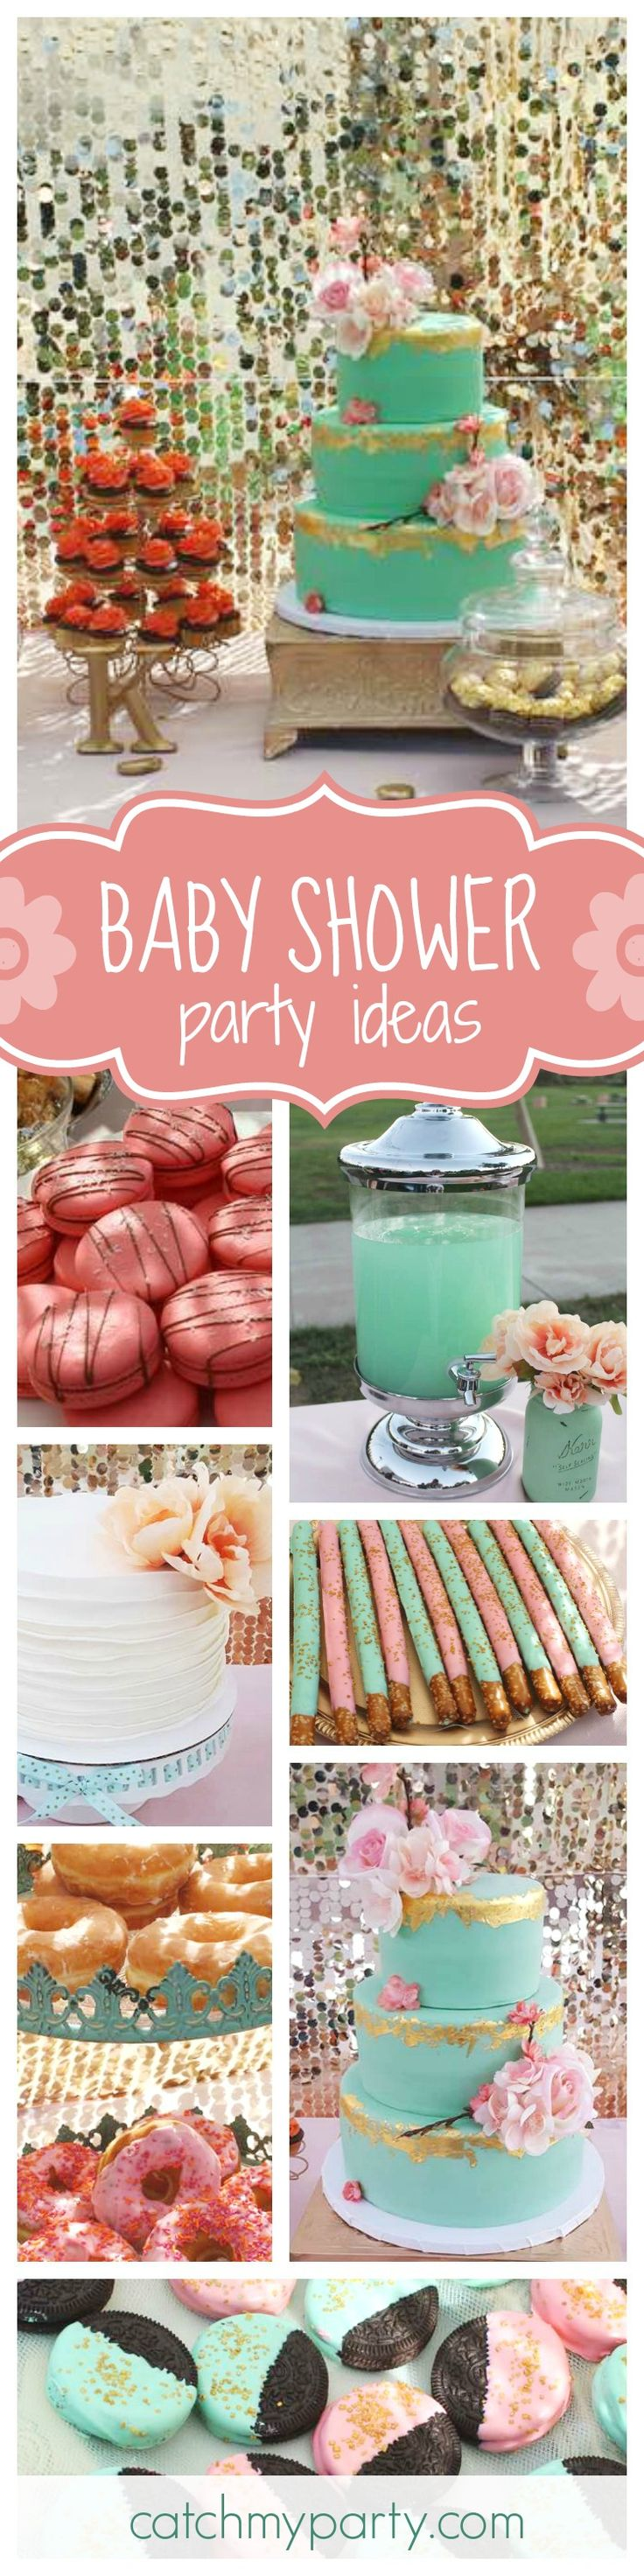 37 best Cupcakes images on Pinterest | Postres, Deserts and Dessert